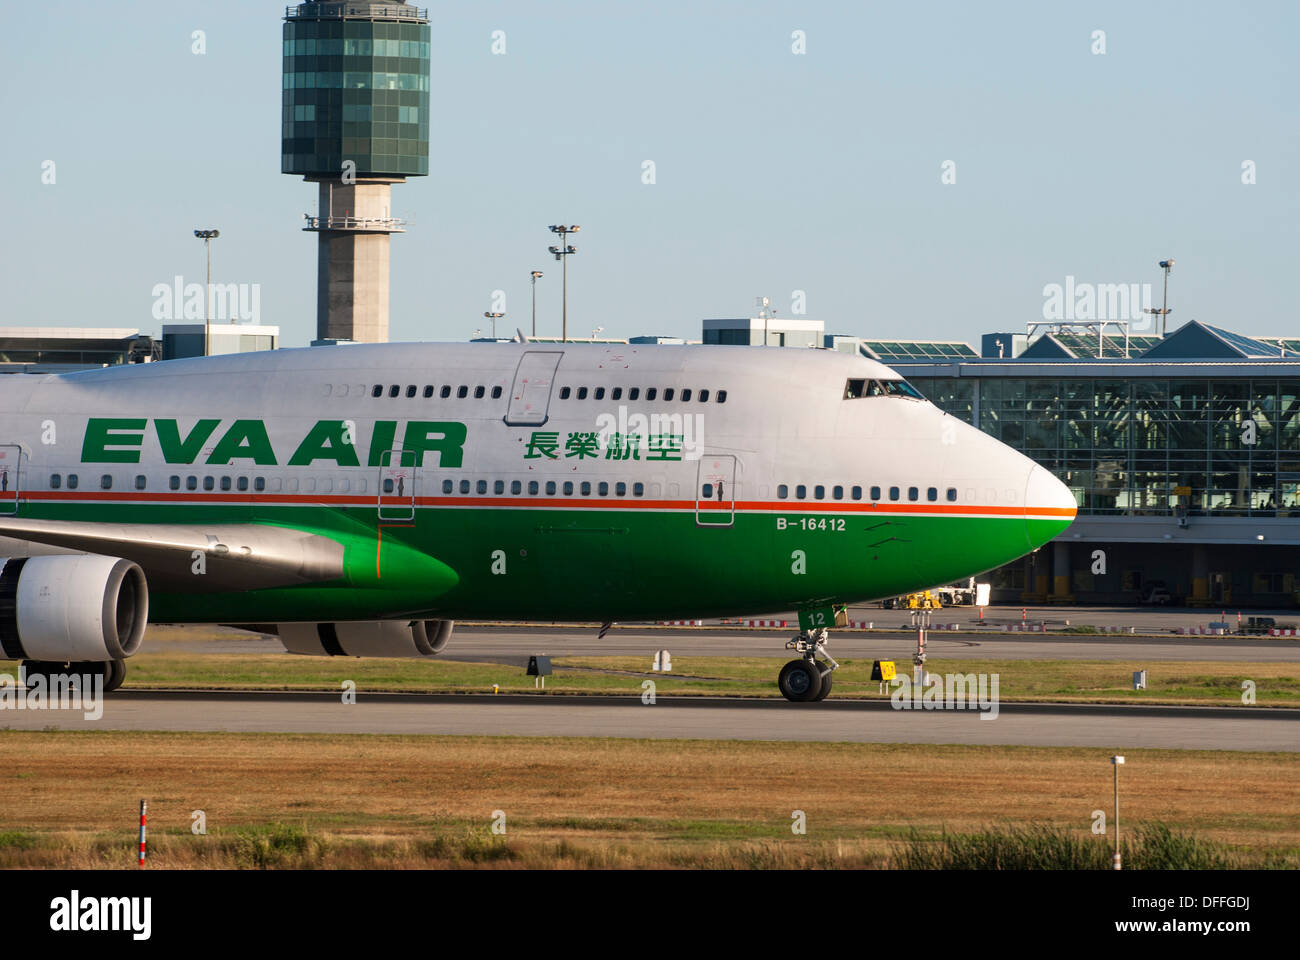 Eva Airlines Wide Body Boeing 747 45E taxiing at Vancouver International Airport - Stock Image